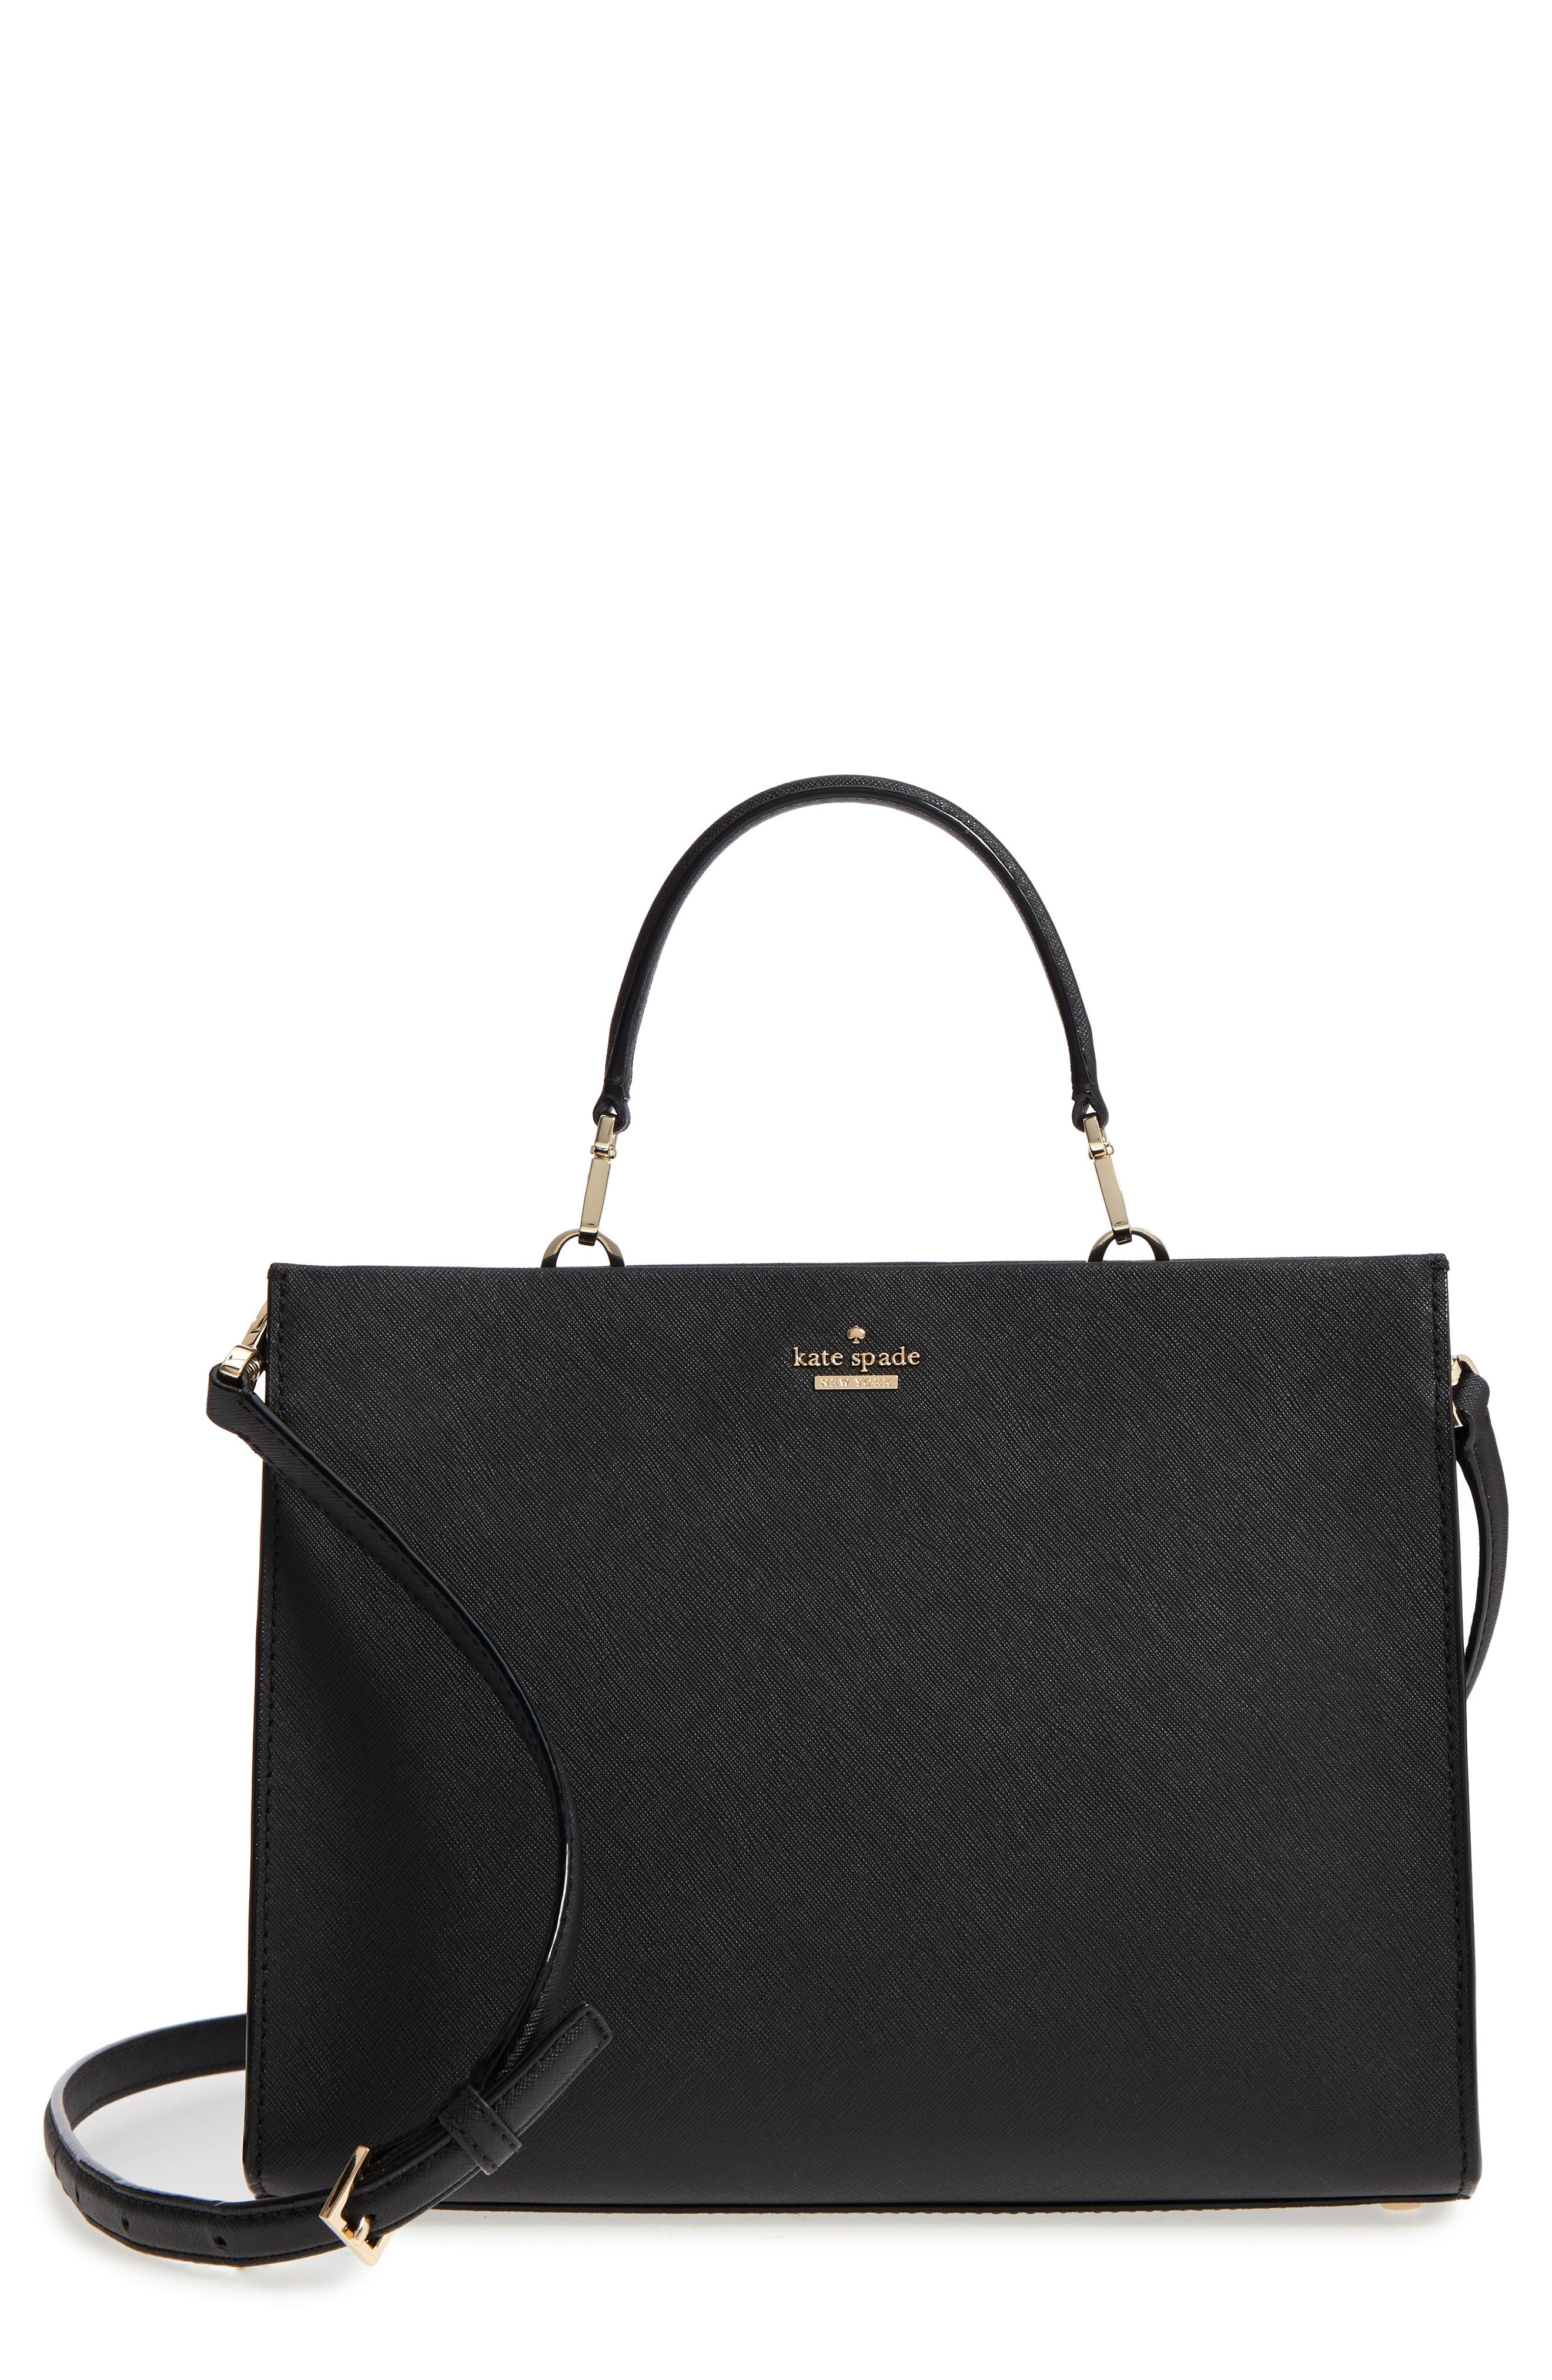 cameron street - sara leather satchel,                             Main thumbnail 1, color,                             Black